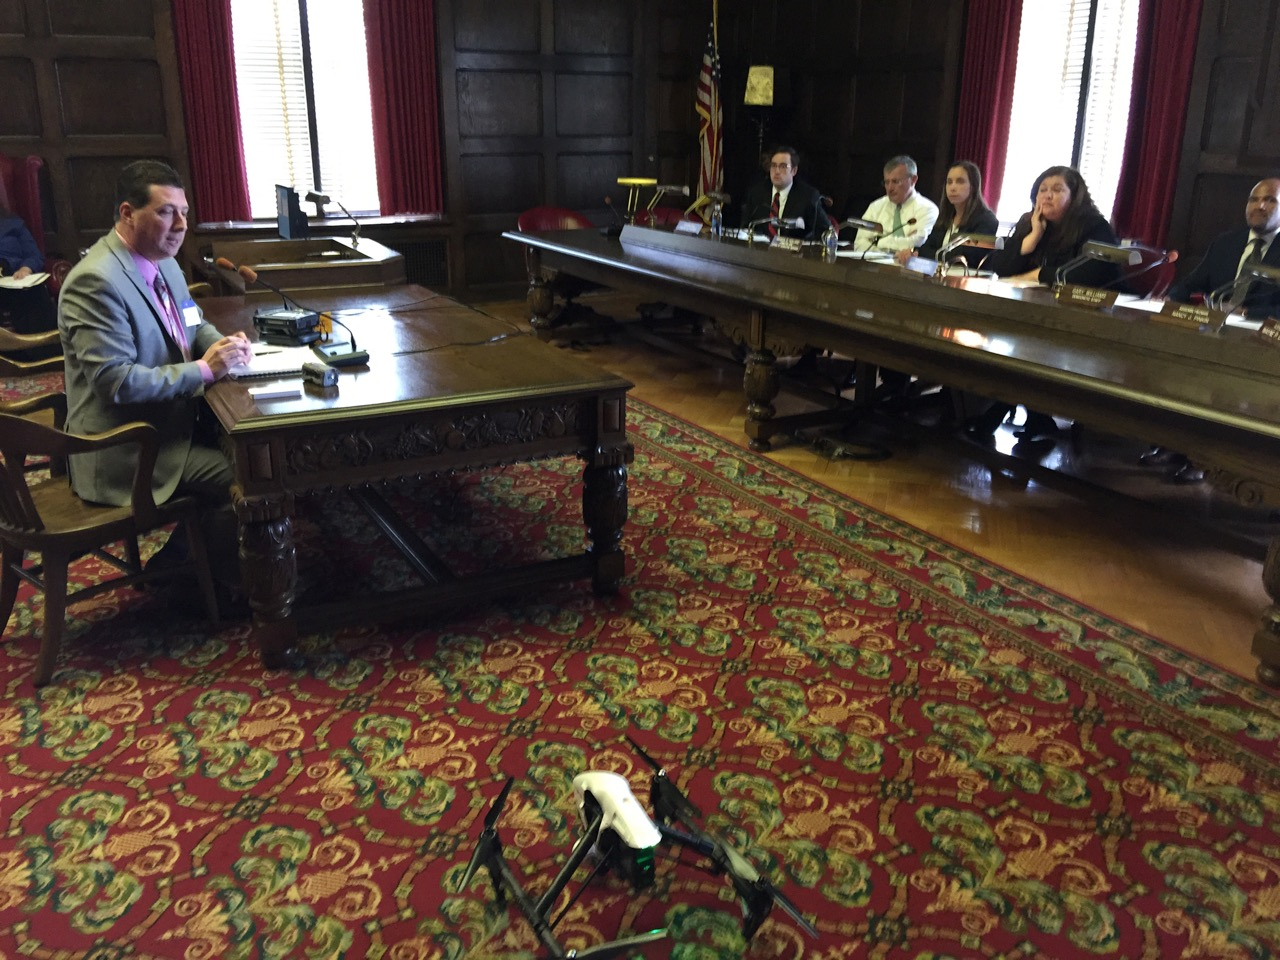 Scott Schober testifying on drones in Trenton NJ